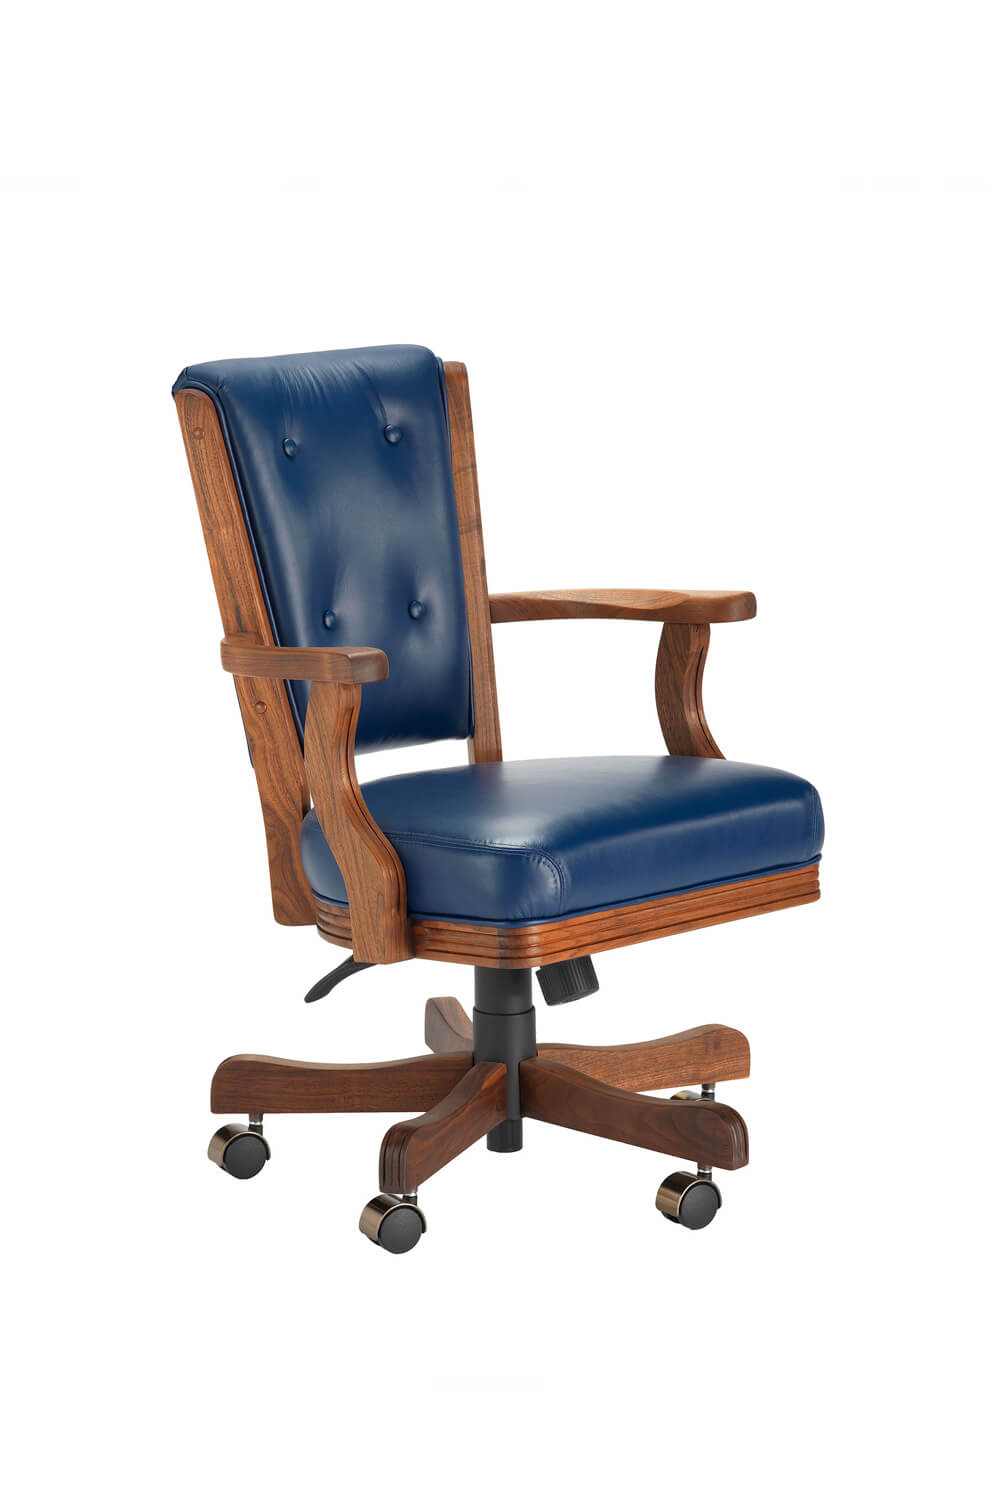 860 Walnut Wood Swivel Adjustable-Height High Back Game Chair with Arms